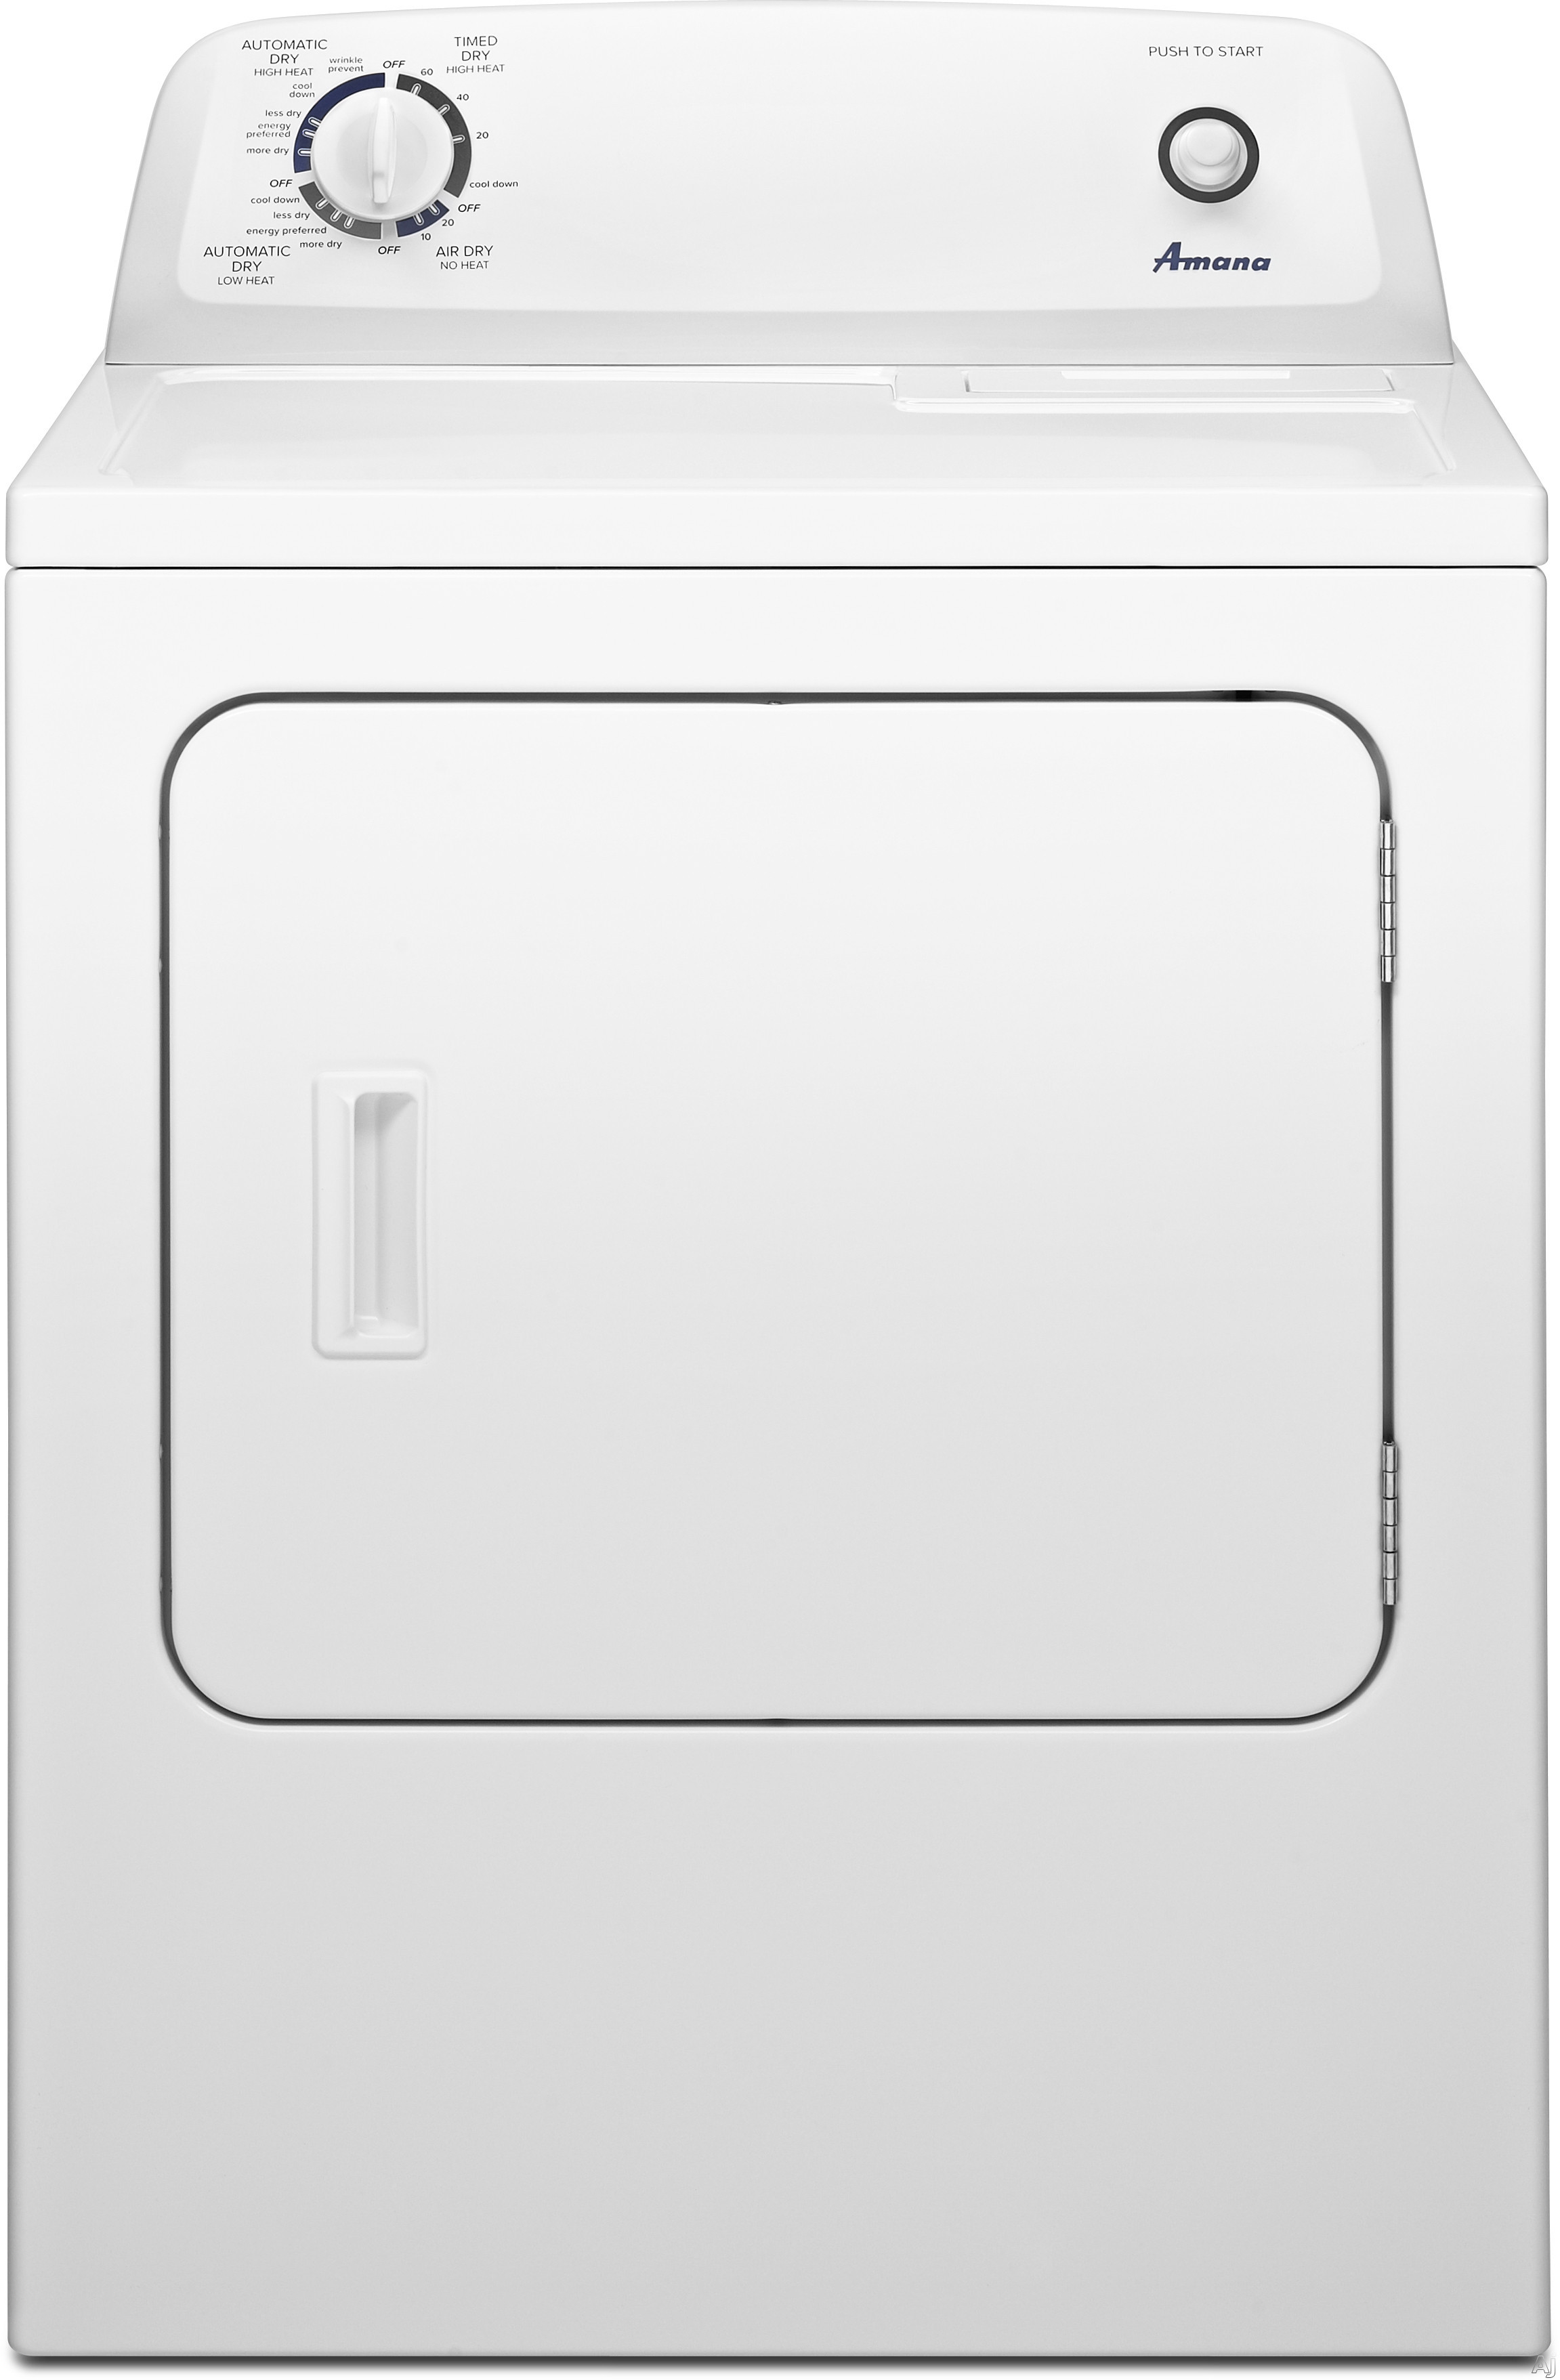 Picture of Amana NED4655EW 29 Inch 65 cu ft Electric Dryer with 11 Dry Cycles 3 Temperature Settings Wrinkle Prevent Option and Automatic Dryness Control